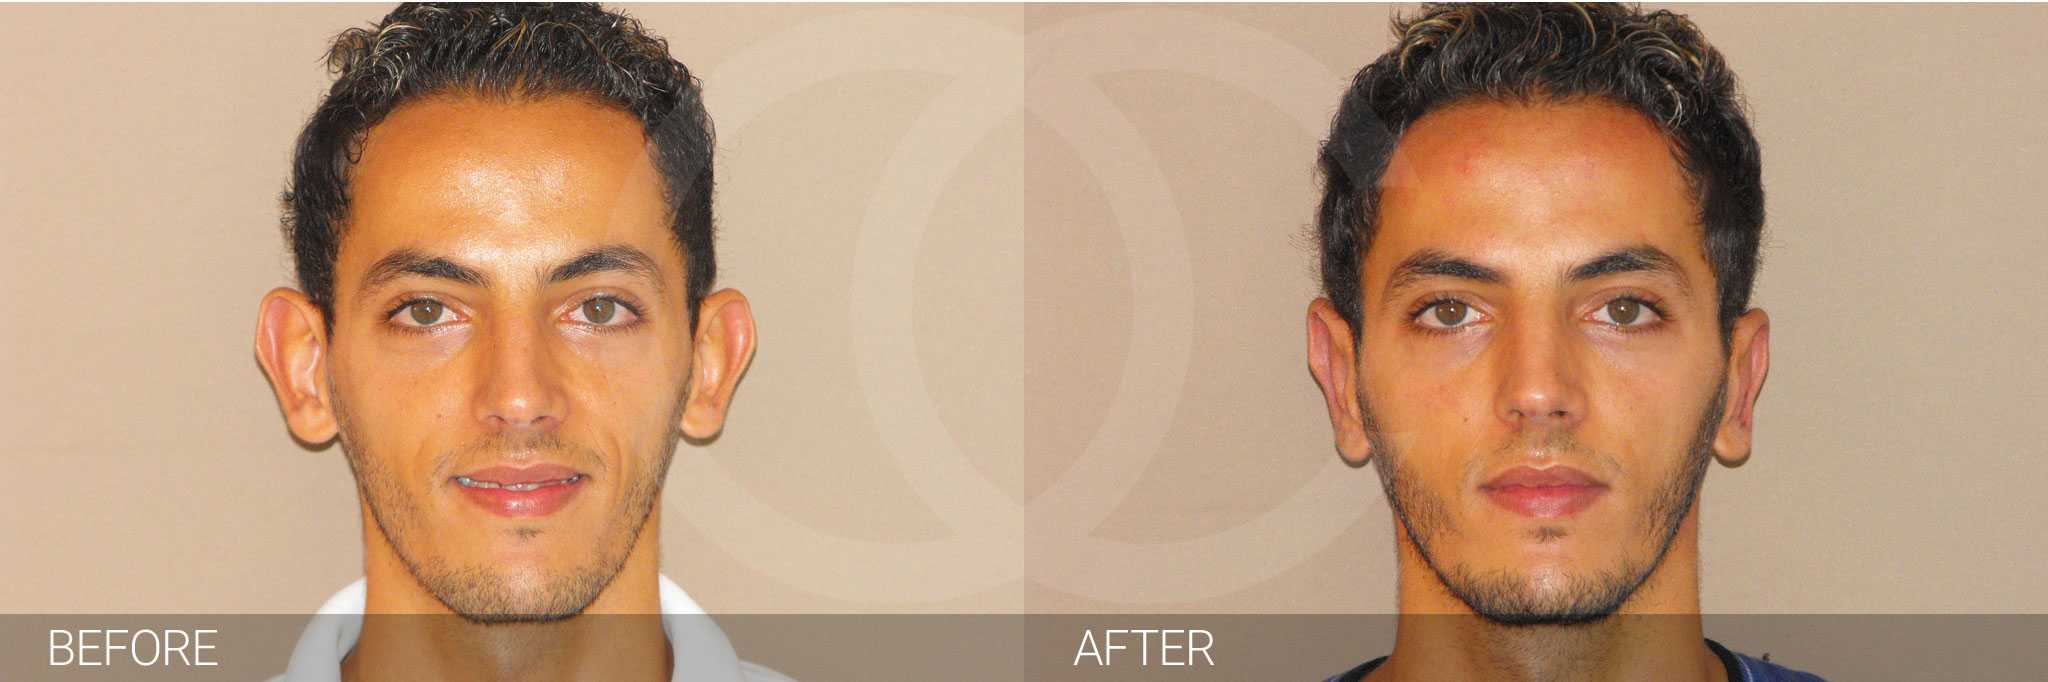 Ear correction surgery photo before and after